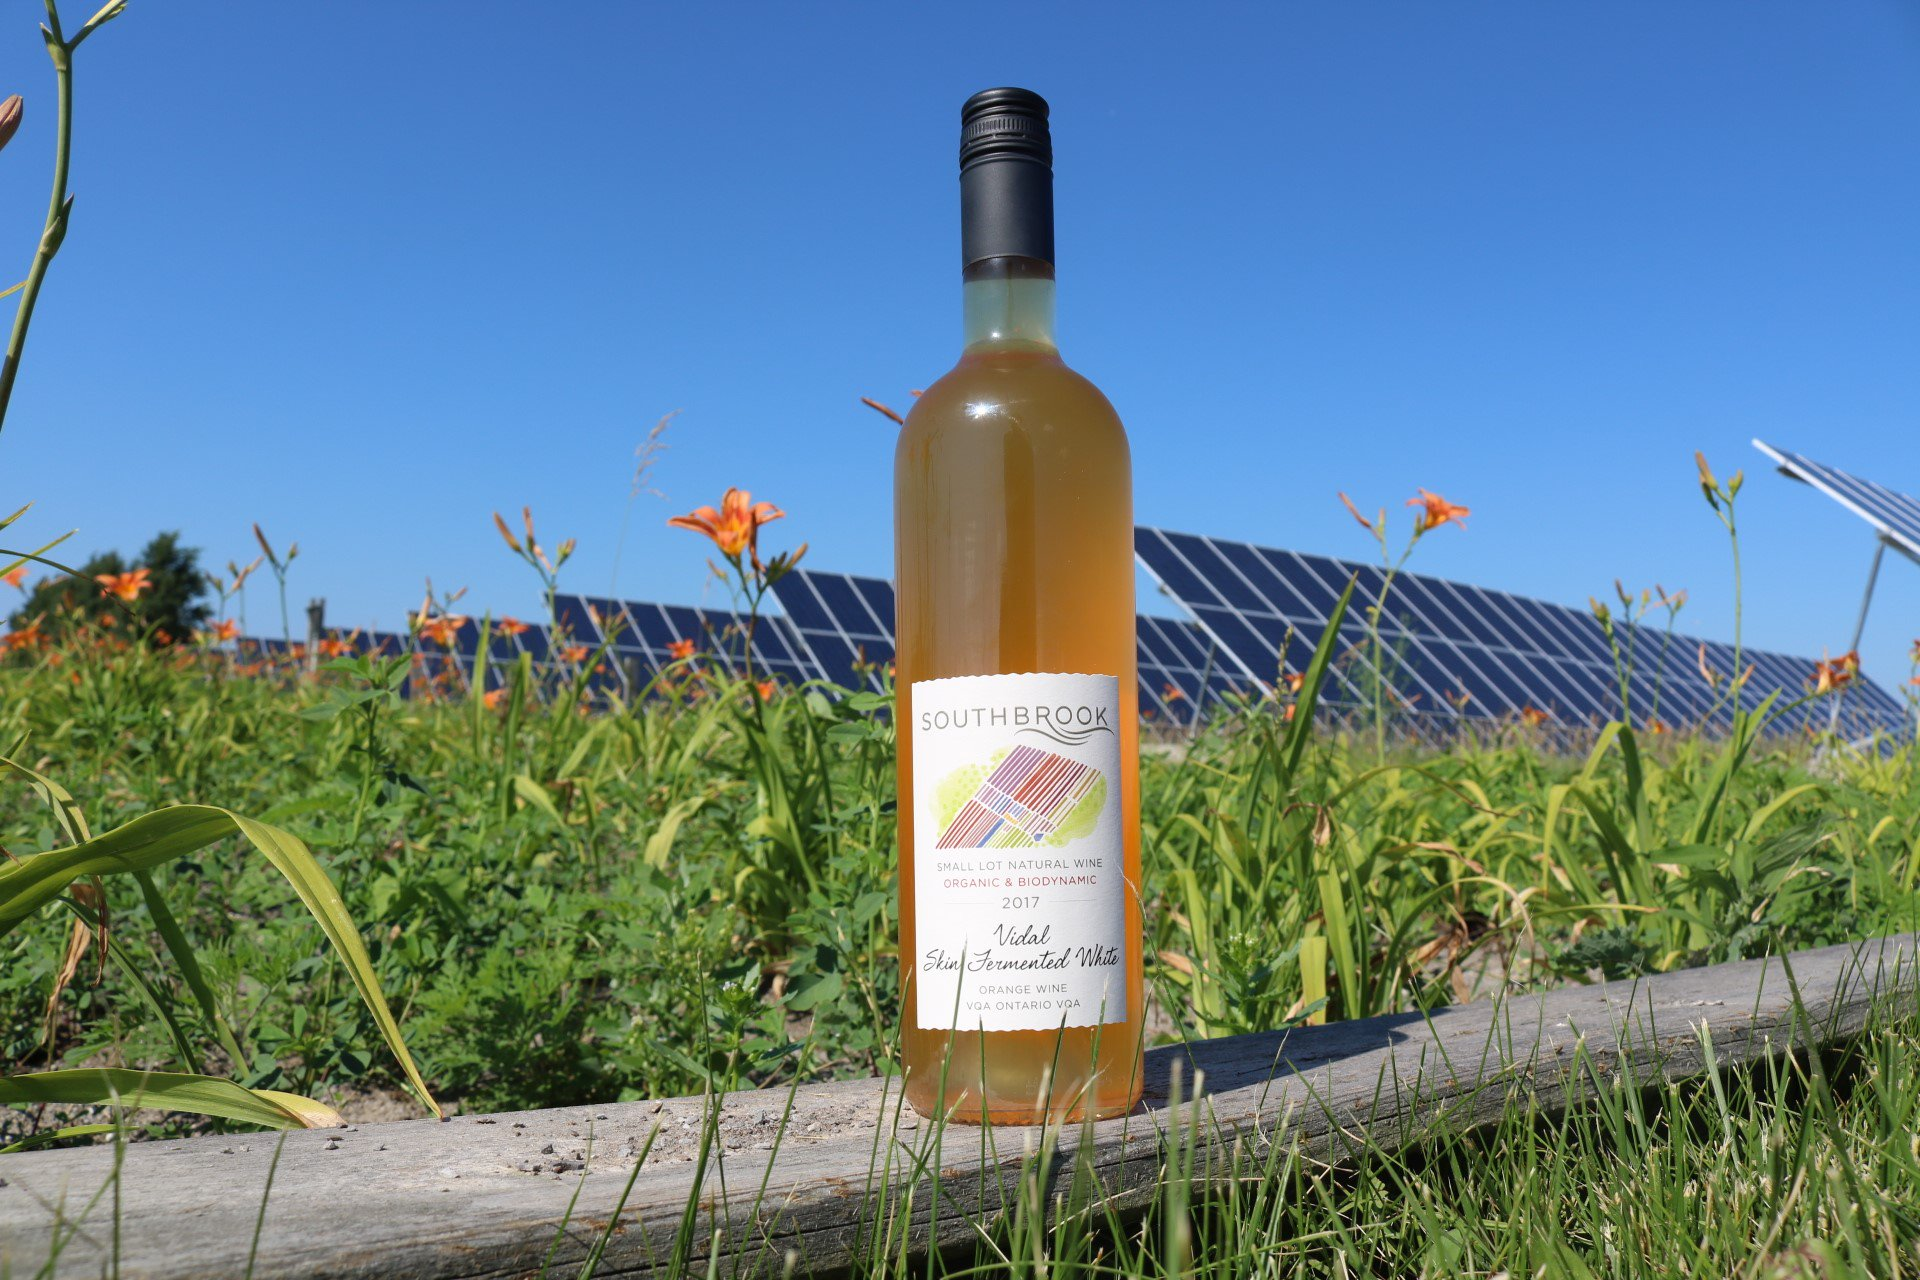 """Southbrook Vineyards on Twitter: """"Its going to be a HOT #LongWeekend ! Stay  cool with our new release of Orange Wine. Retails at $29.95, available  online or at the tasting bar https://t.co/Eft4bIwbaO…"""